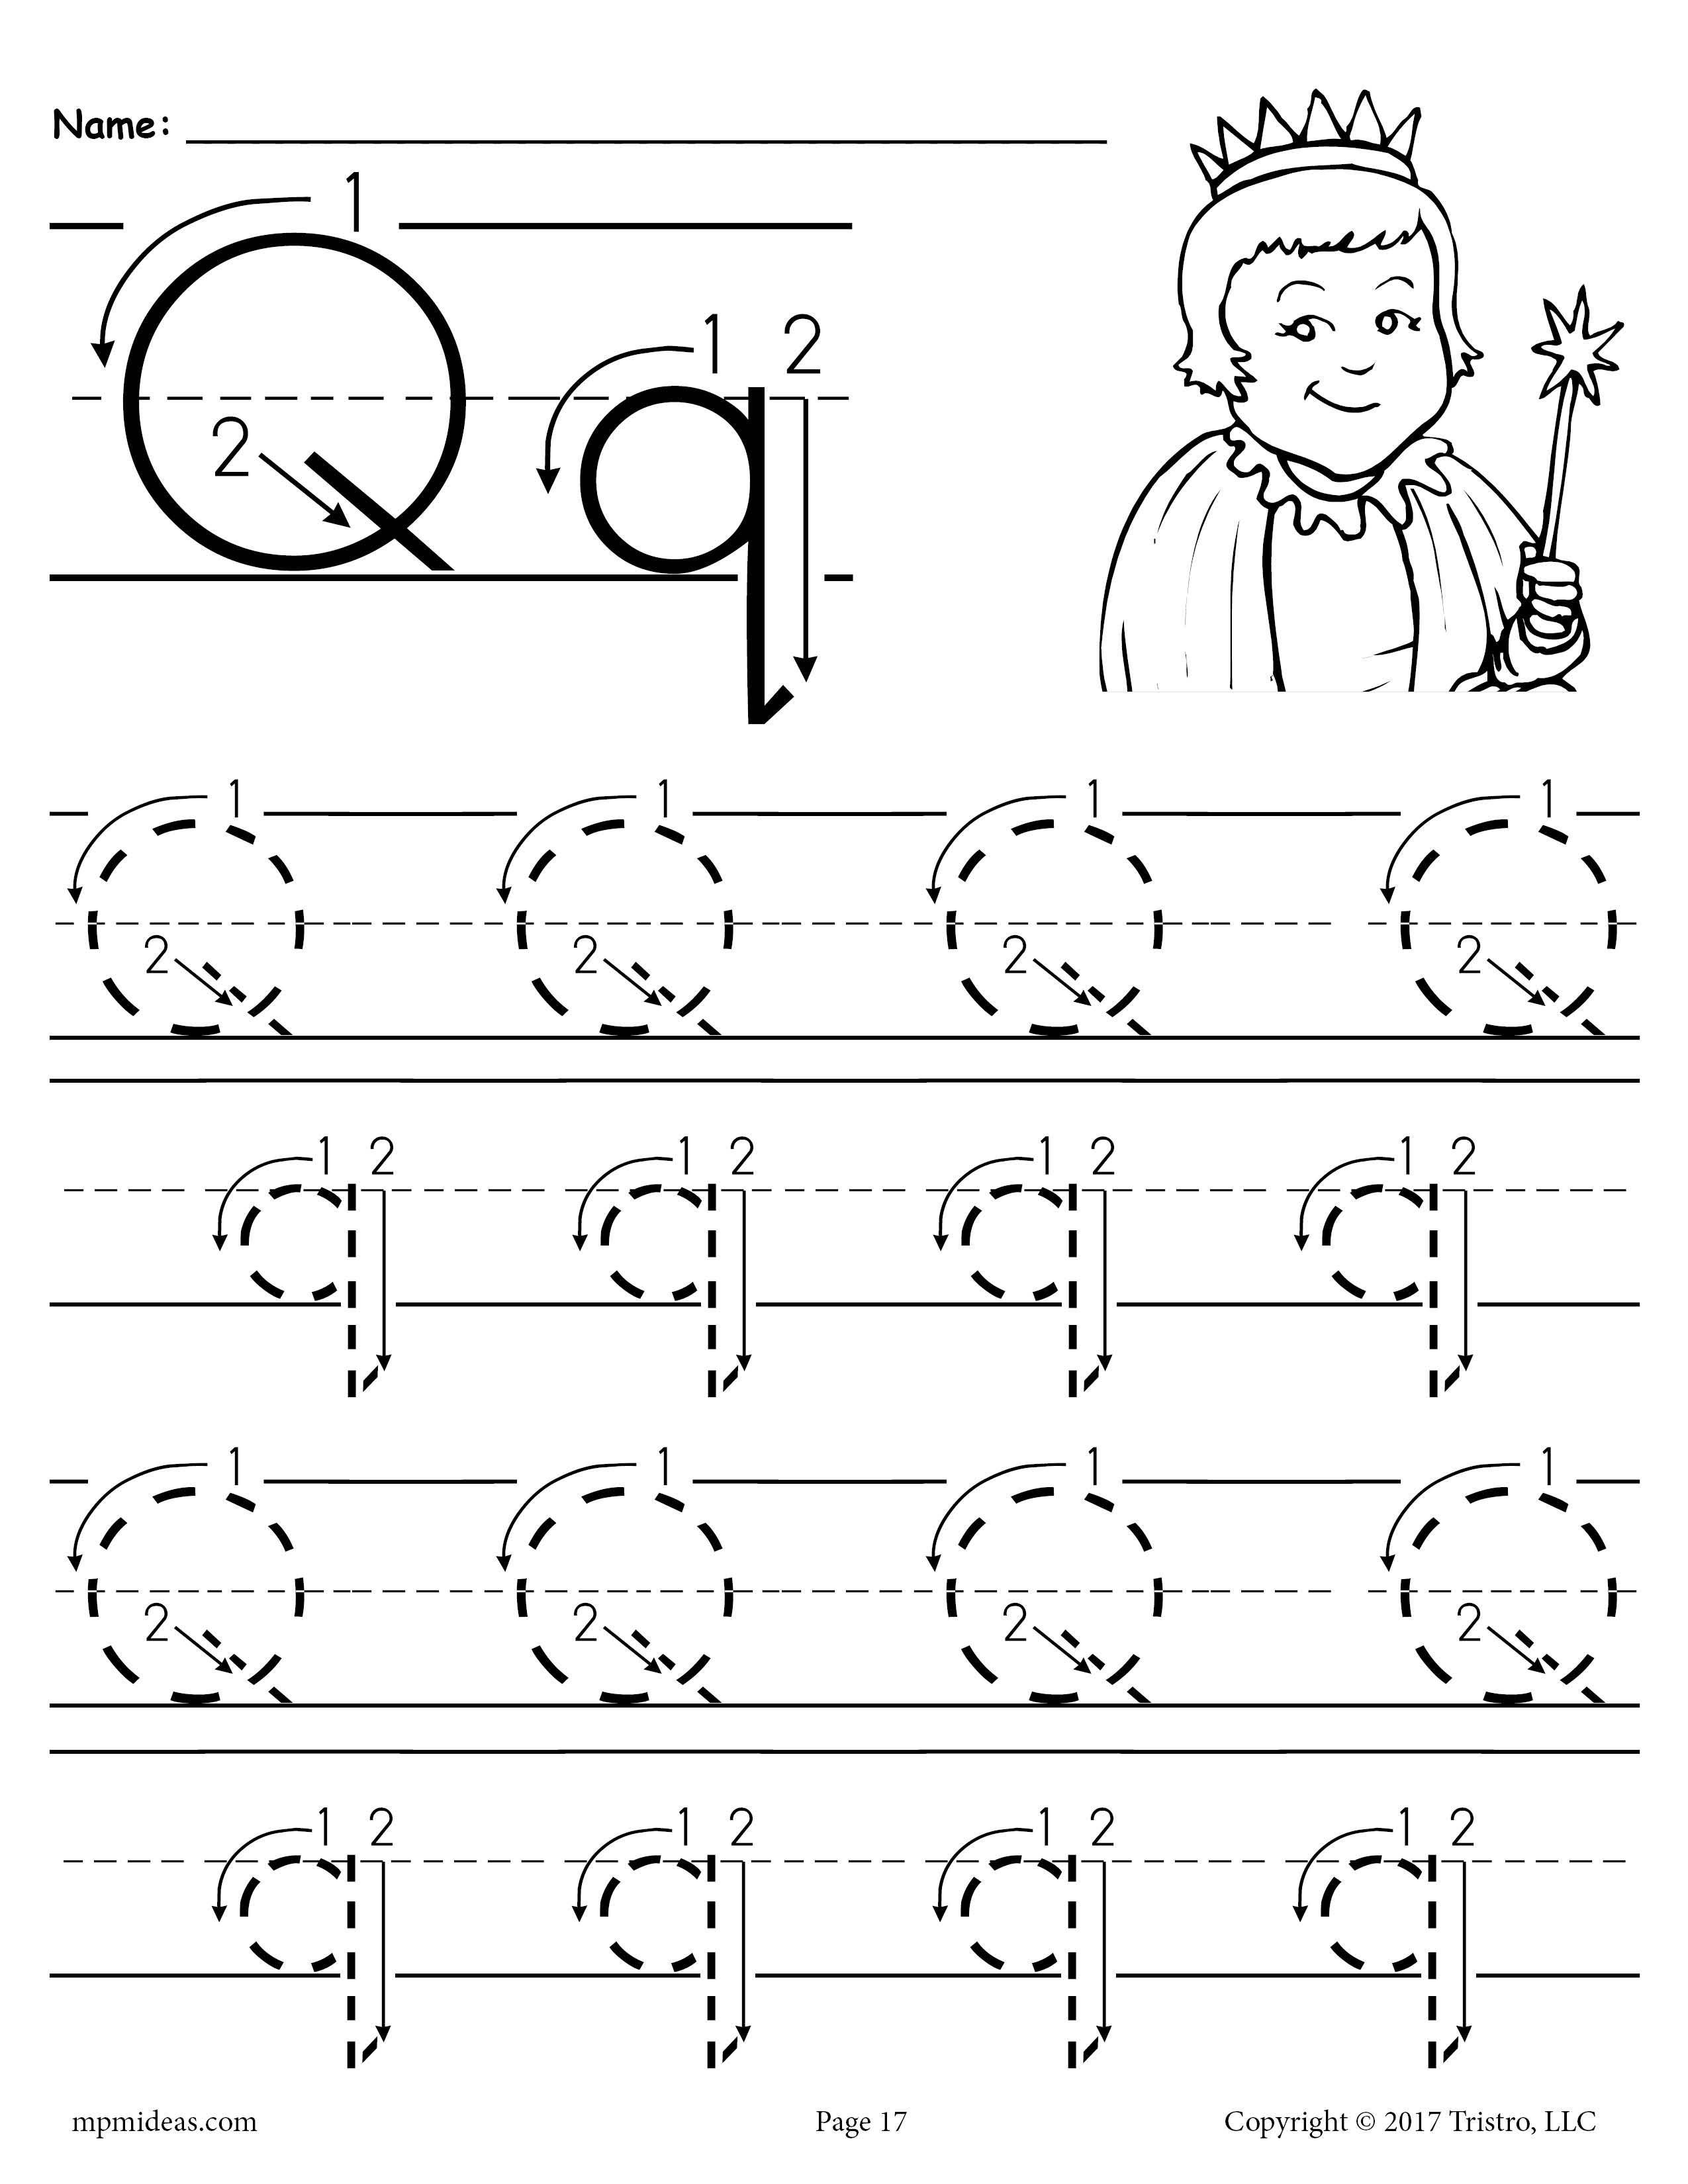 Printable Letter Q Tracing Worksheet With Number And Arrow Guides Supplyme Letter Q Worksheets Preschool Letters Tracing Worksheets Preschool [ 3300 x 2550 Pixel ]